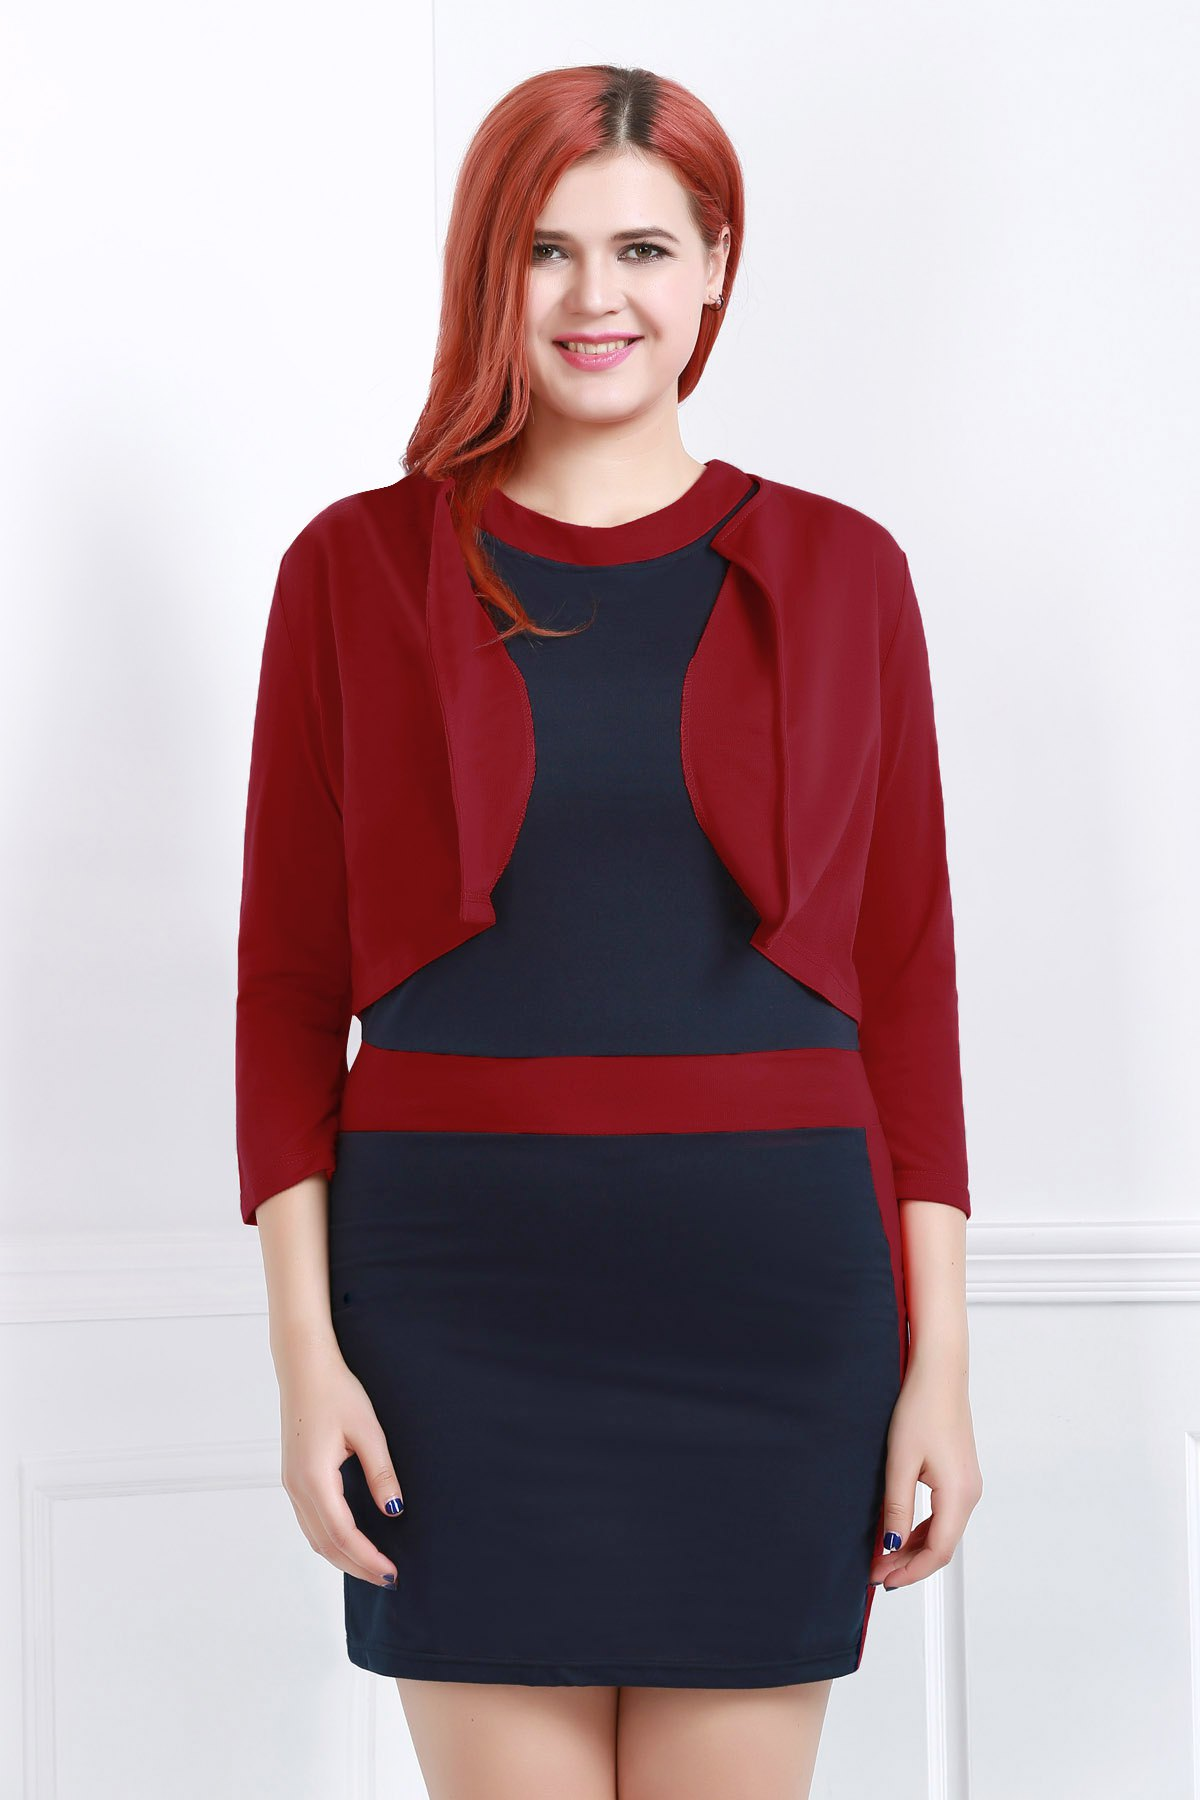 Sext Jewel Neck Color Block Bodycon Dress and Red Jacket Twinset For Women - RED 4XL